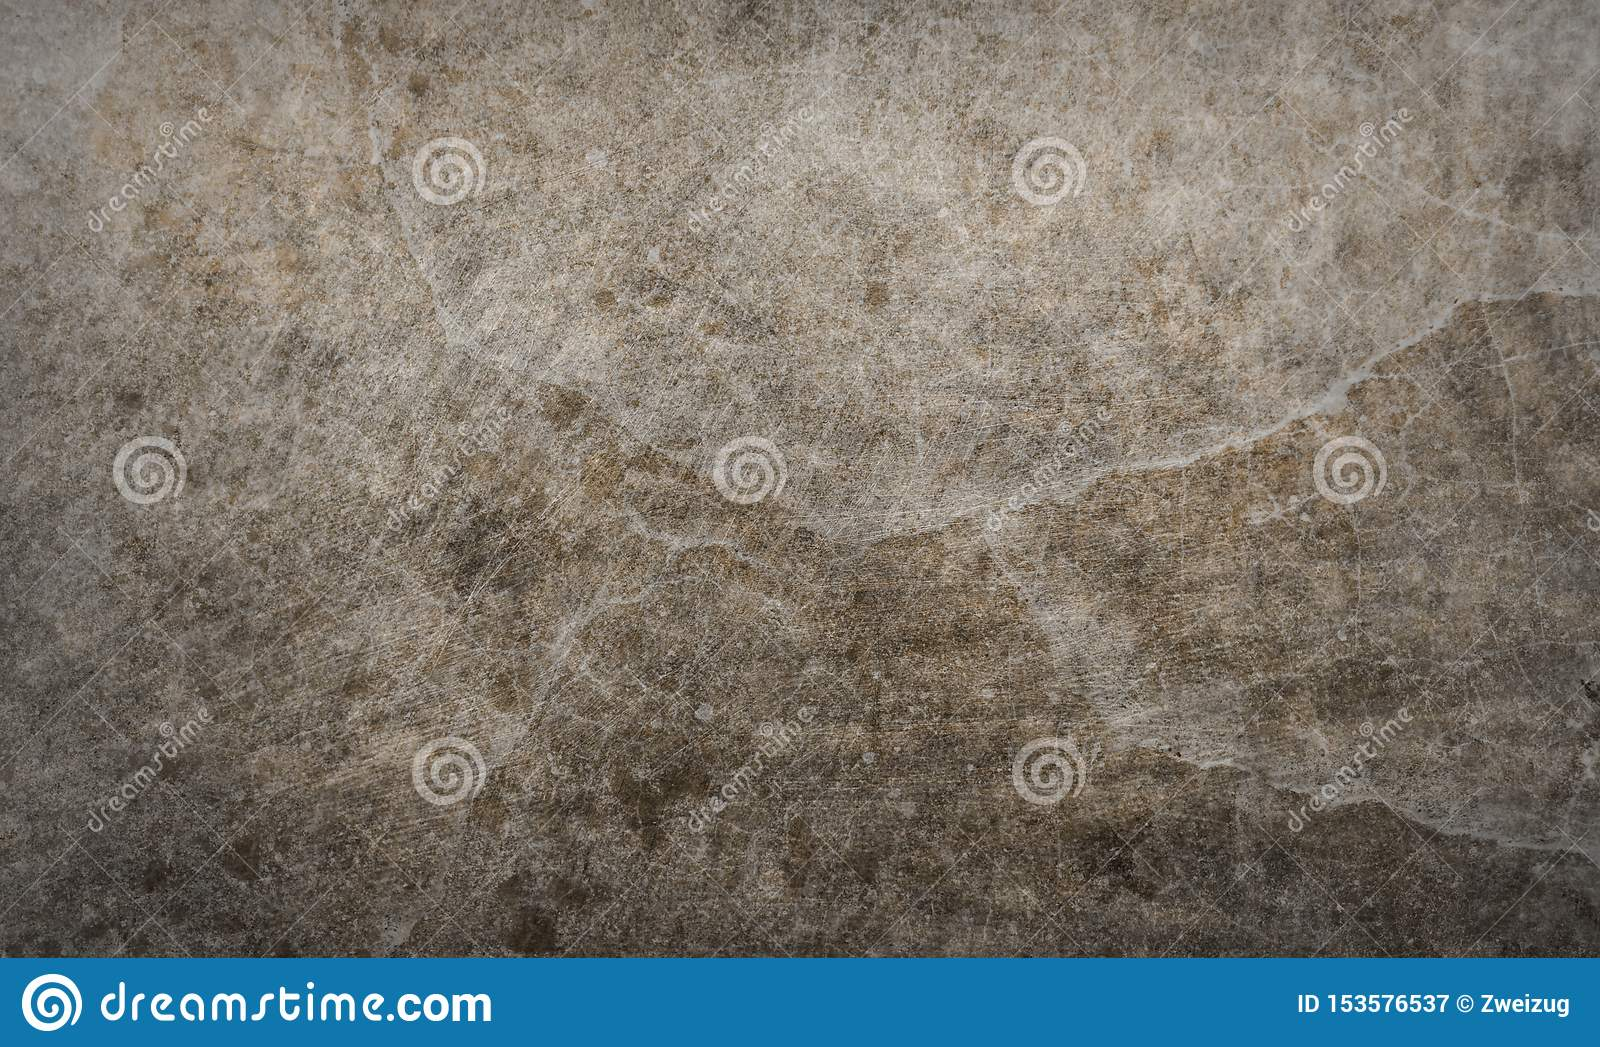 Cracked brown marble stone conceptual texture background no. 41